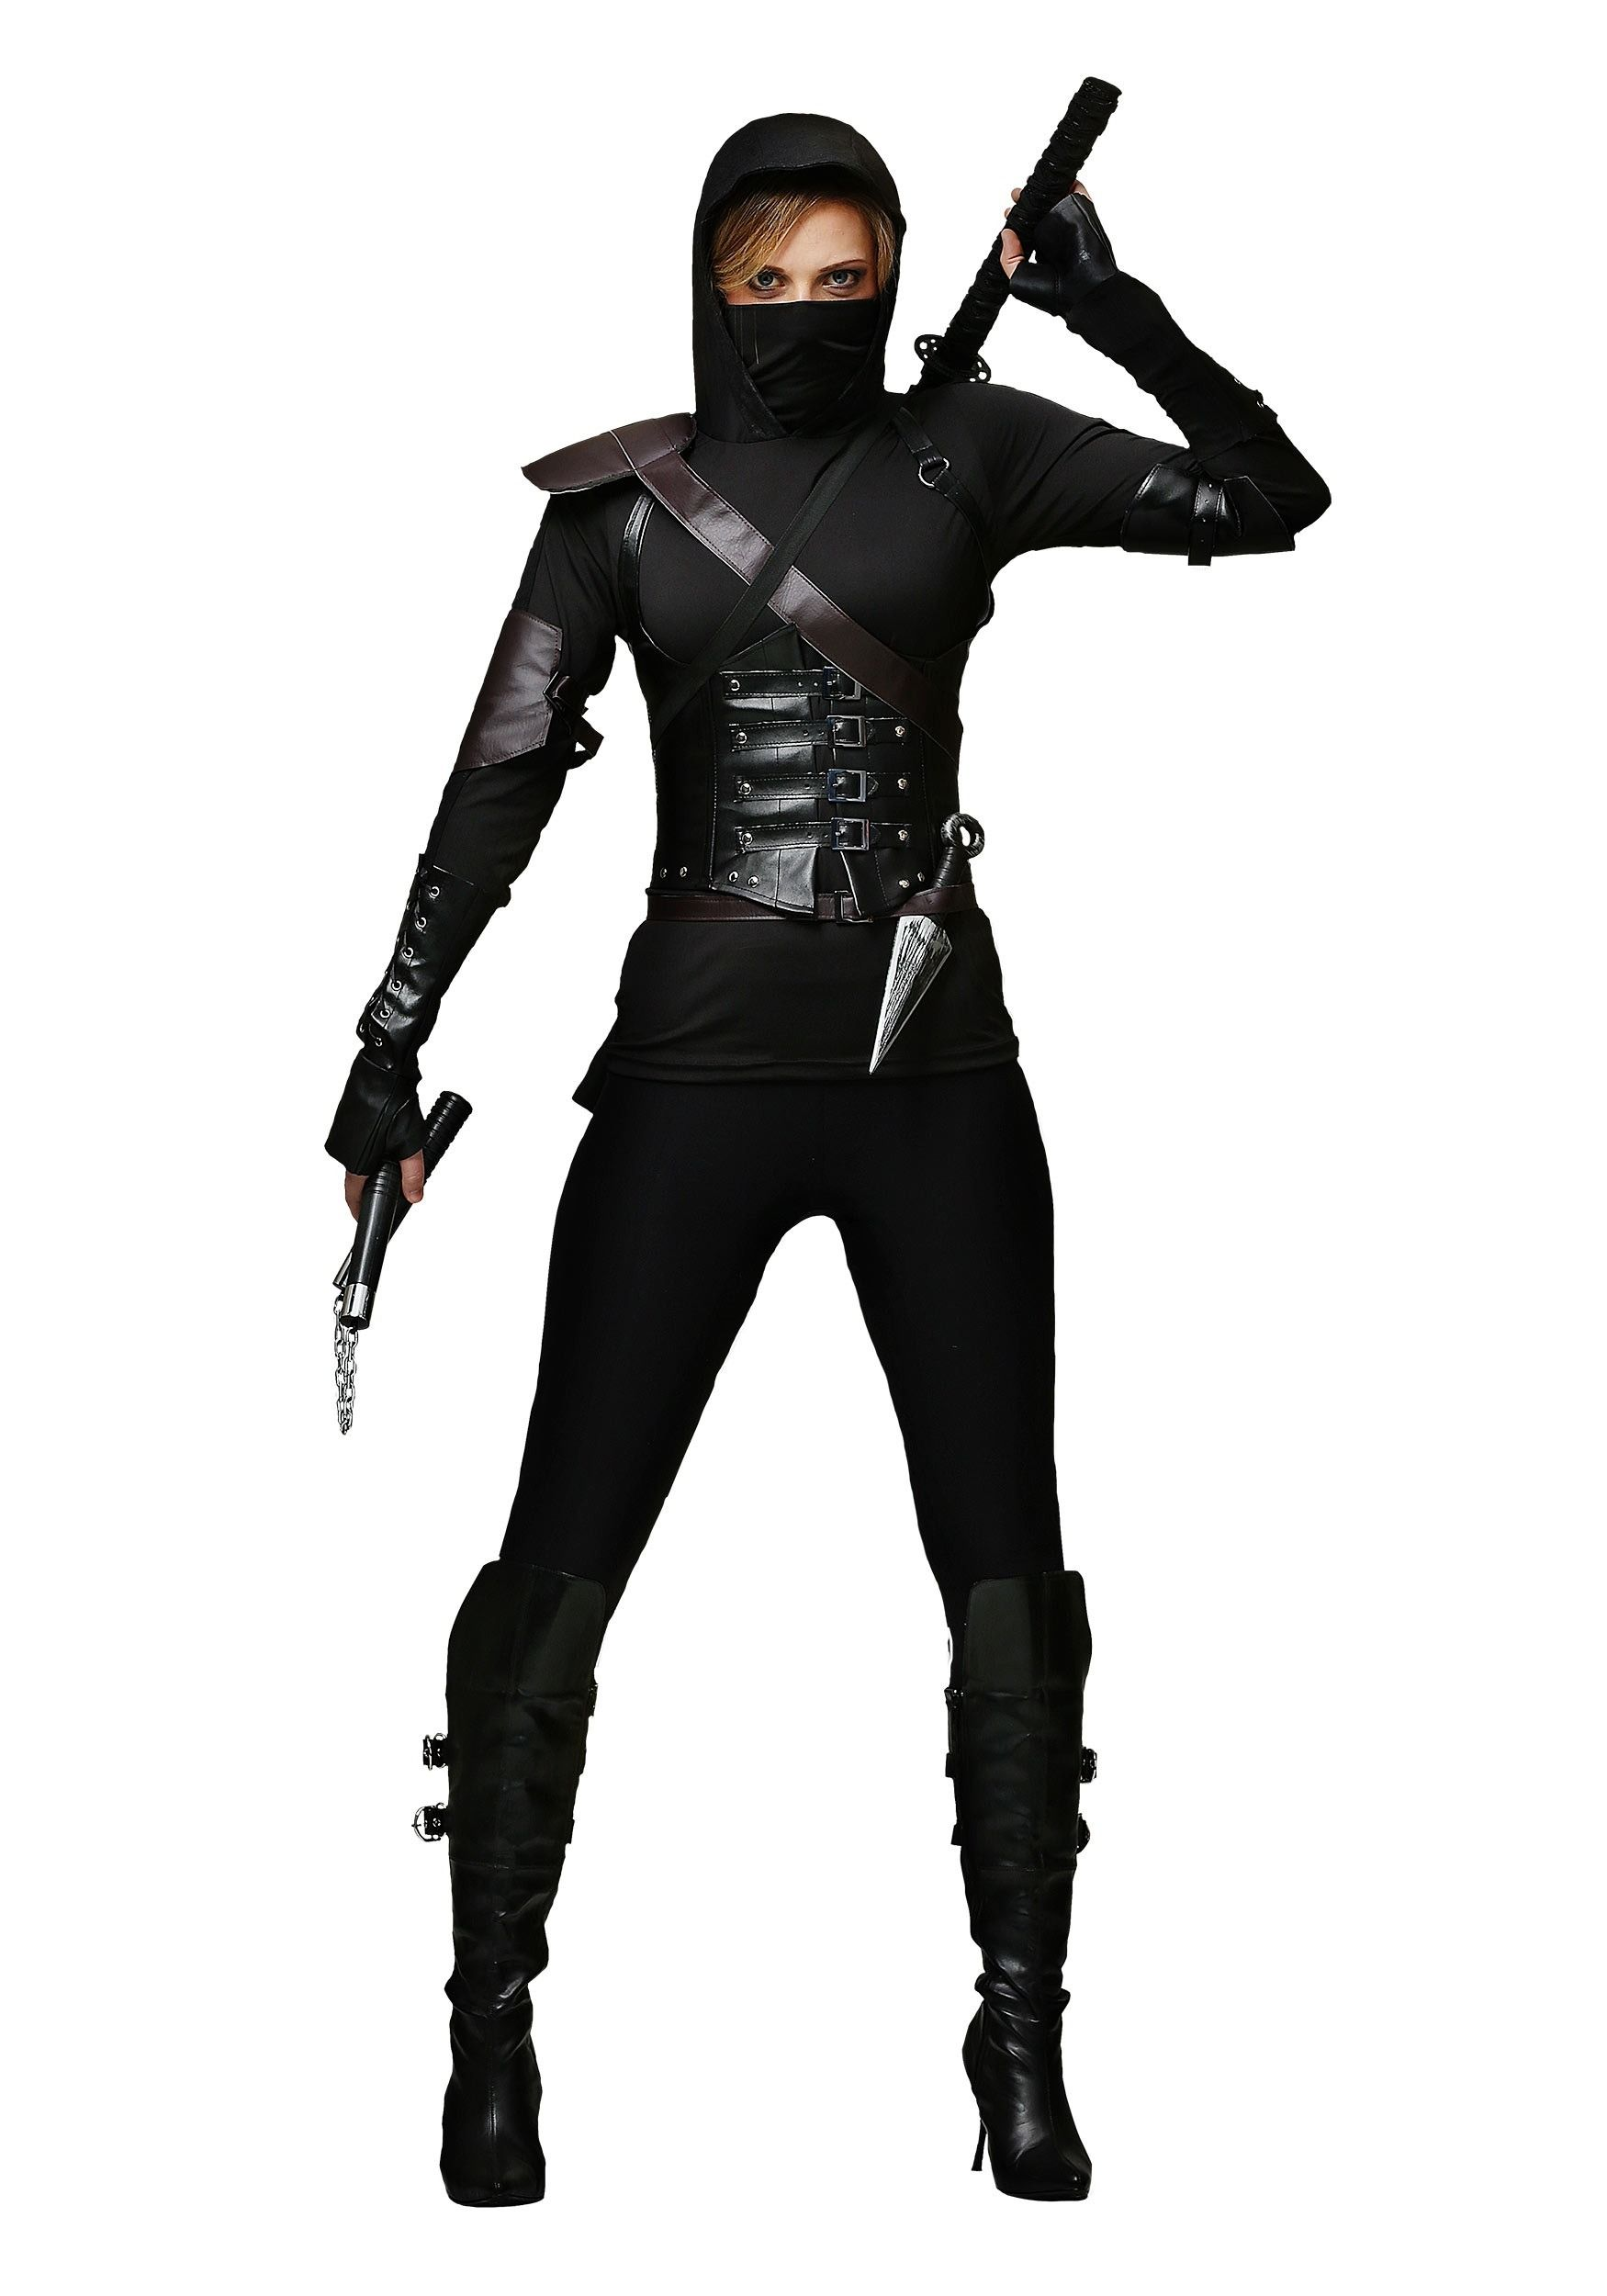 cf63bebd3 This Women's Ninja Assassin Costume is an exclusive design that will  transform you into a sneaky foe.